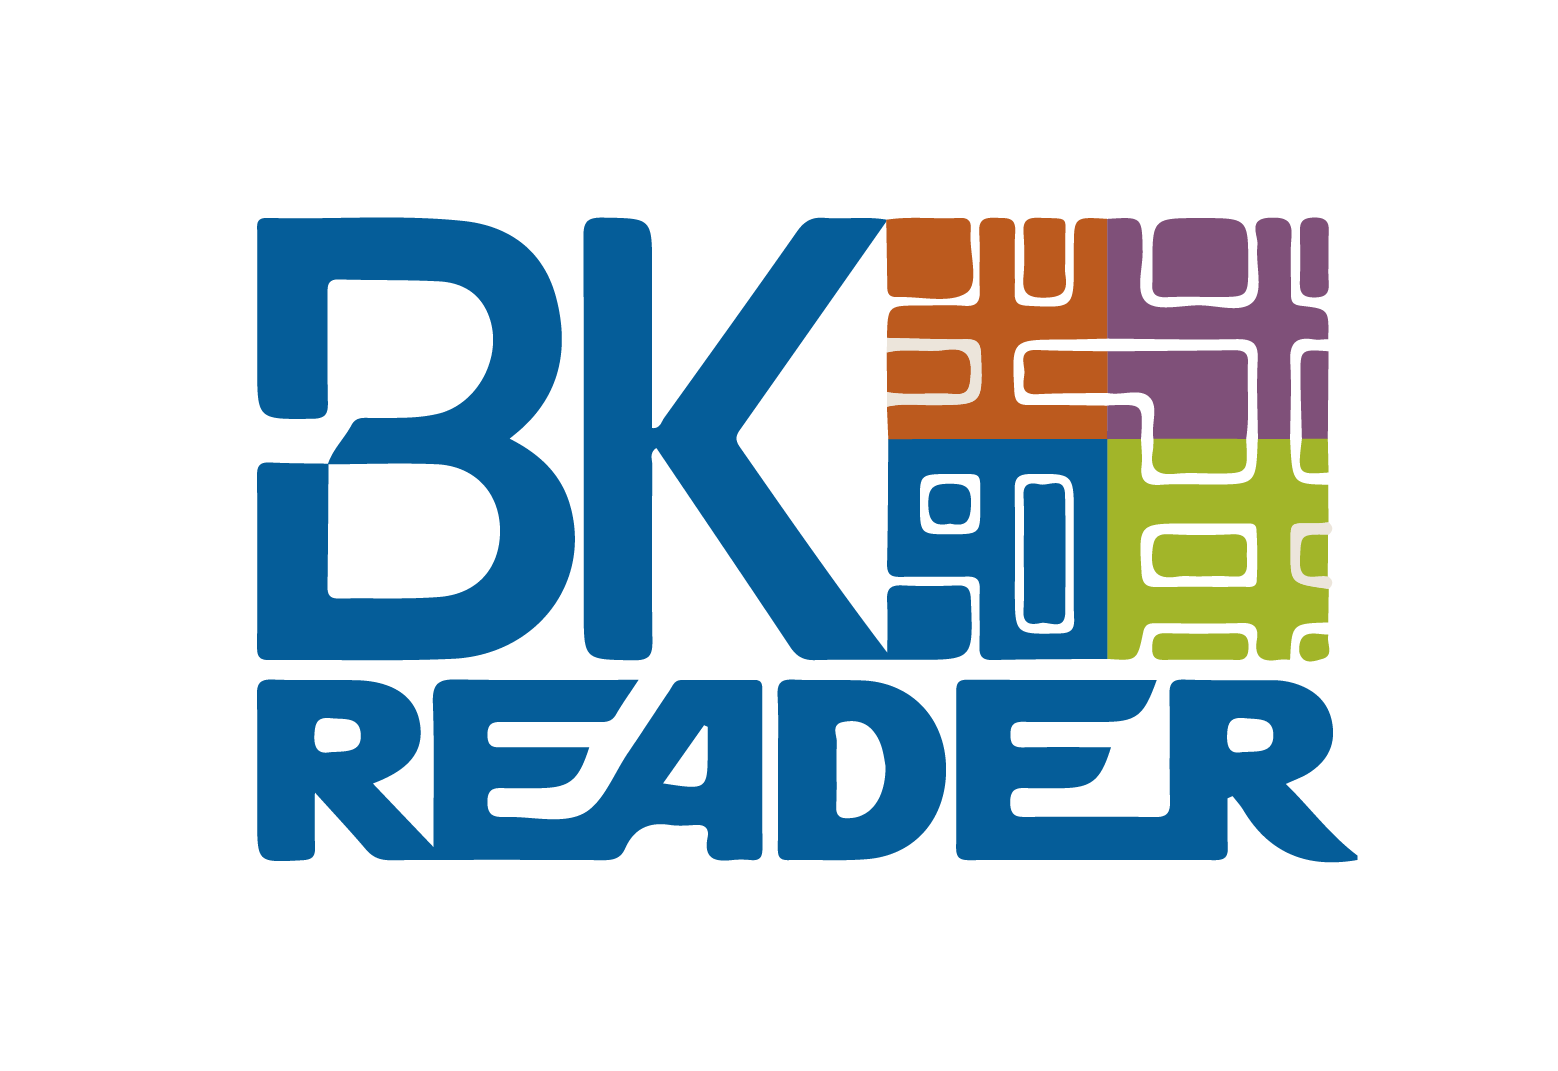 http://intersectionatthejunction.com/content/4-about/1-press/bklyner-logo-03.png